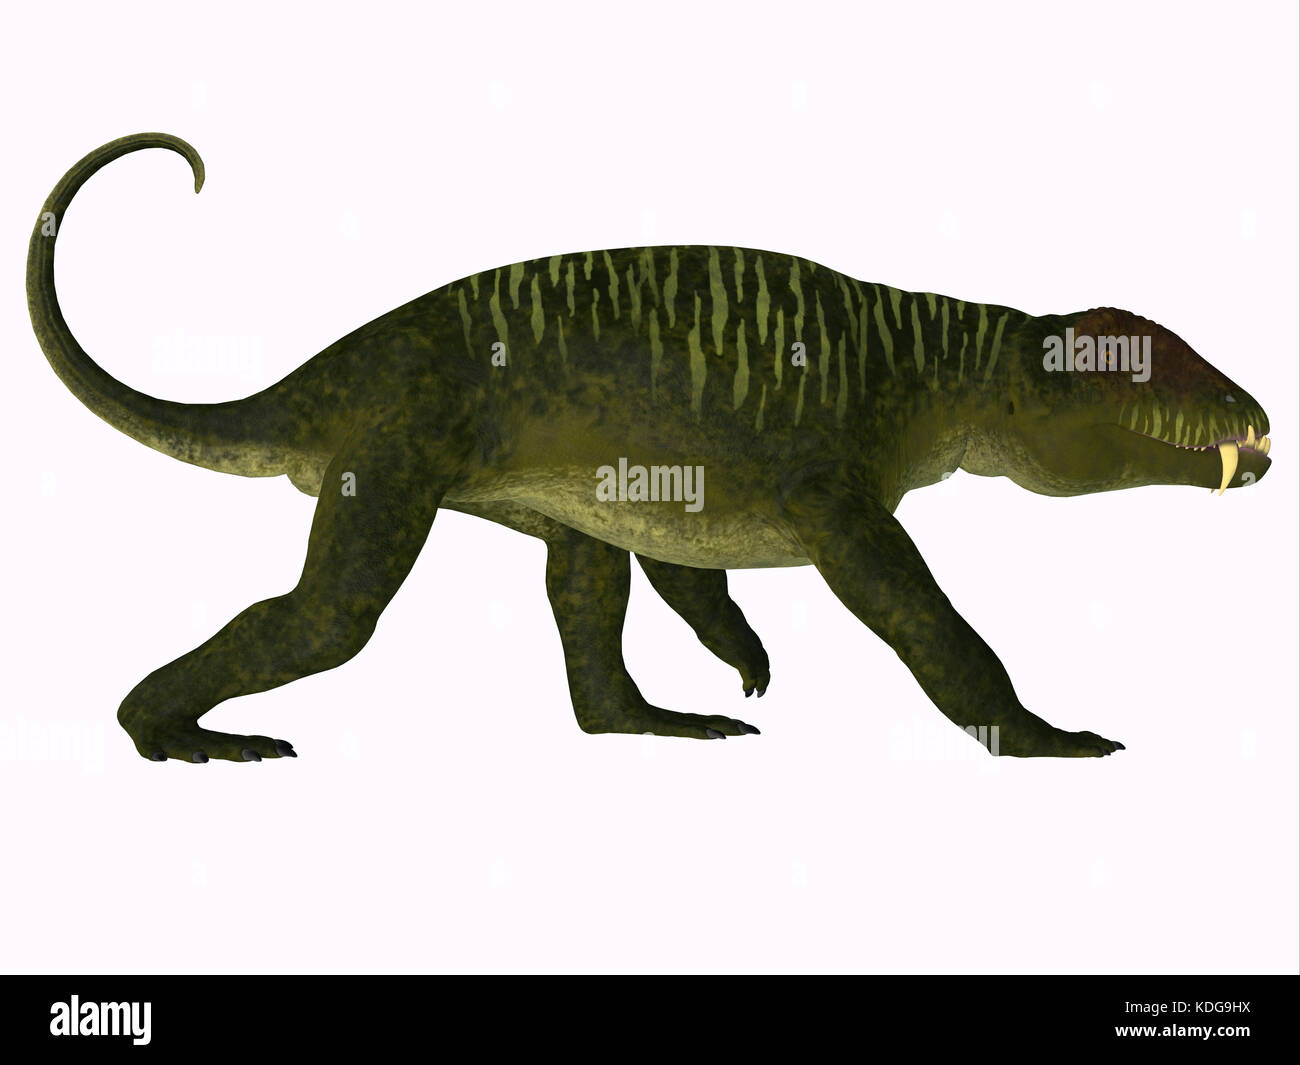 Doliosauriscus Dinosaur - Doliosauriscus is an extinct genus of therapsid carnivorous dinosaur that lived in Russia - Stock Image